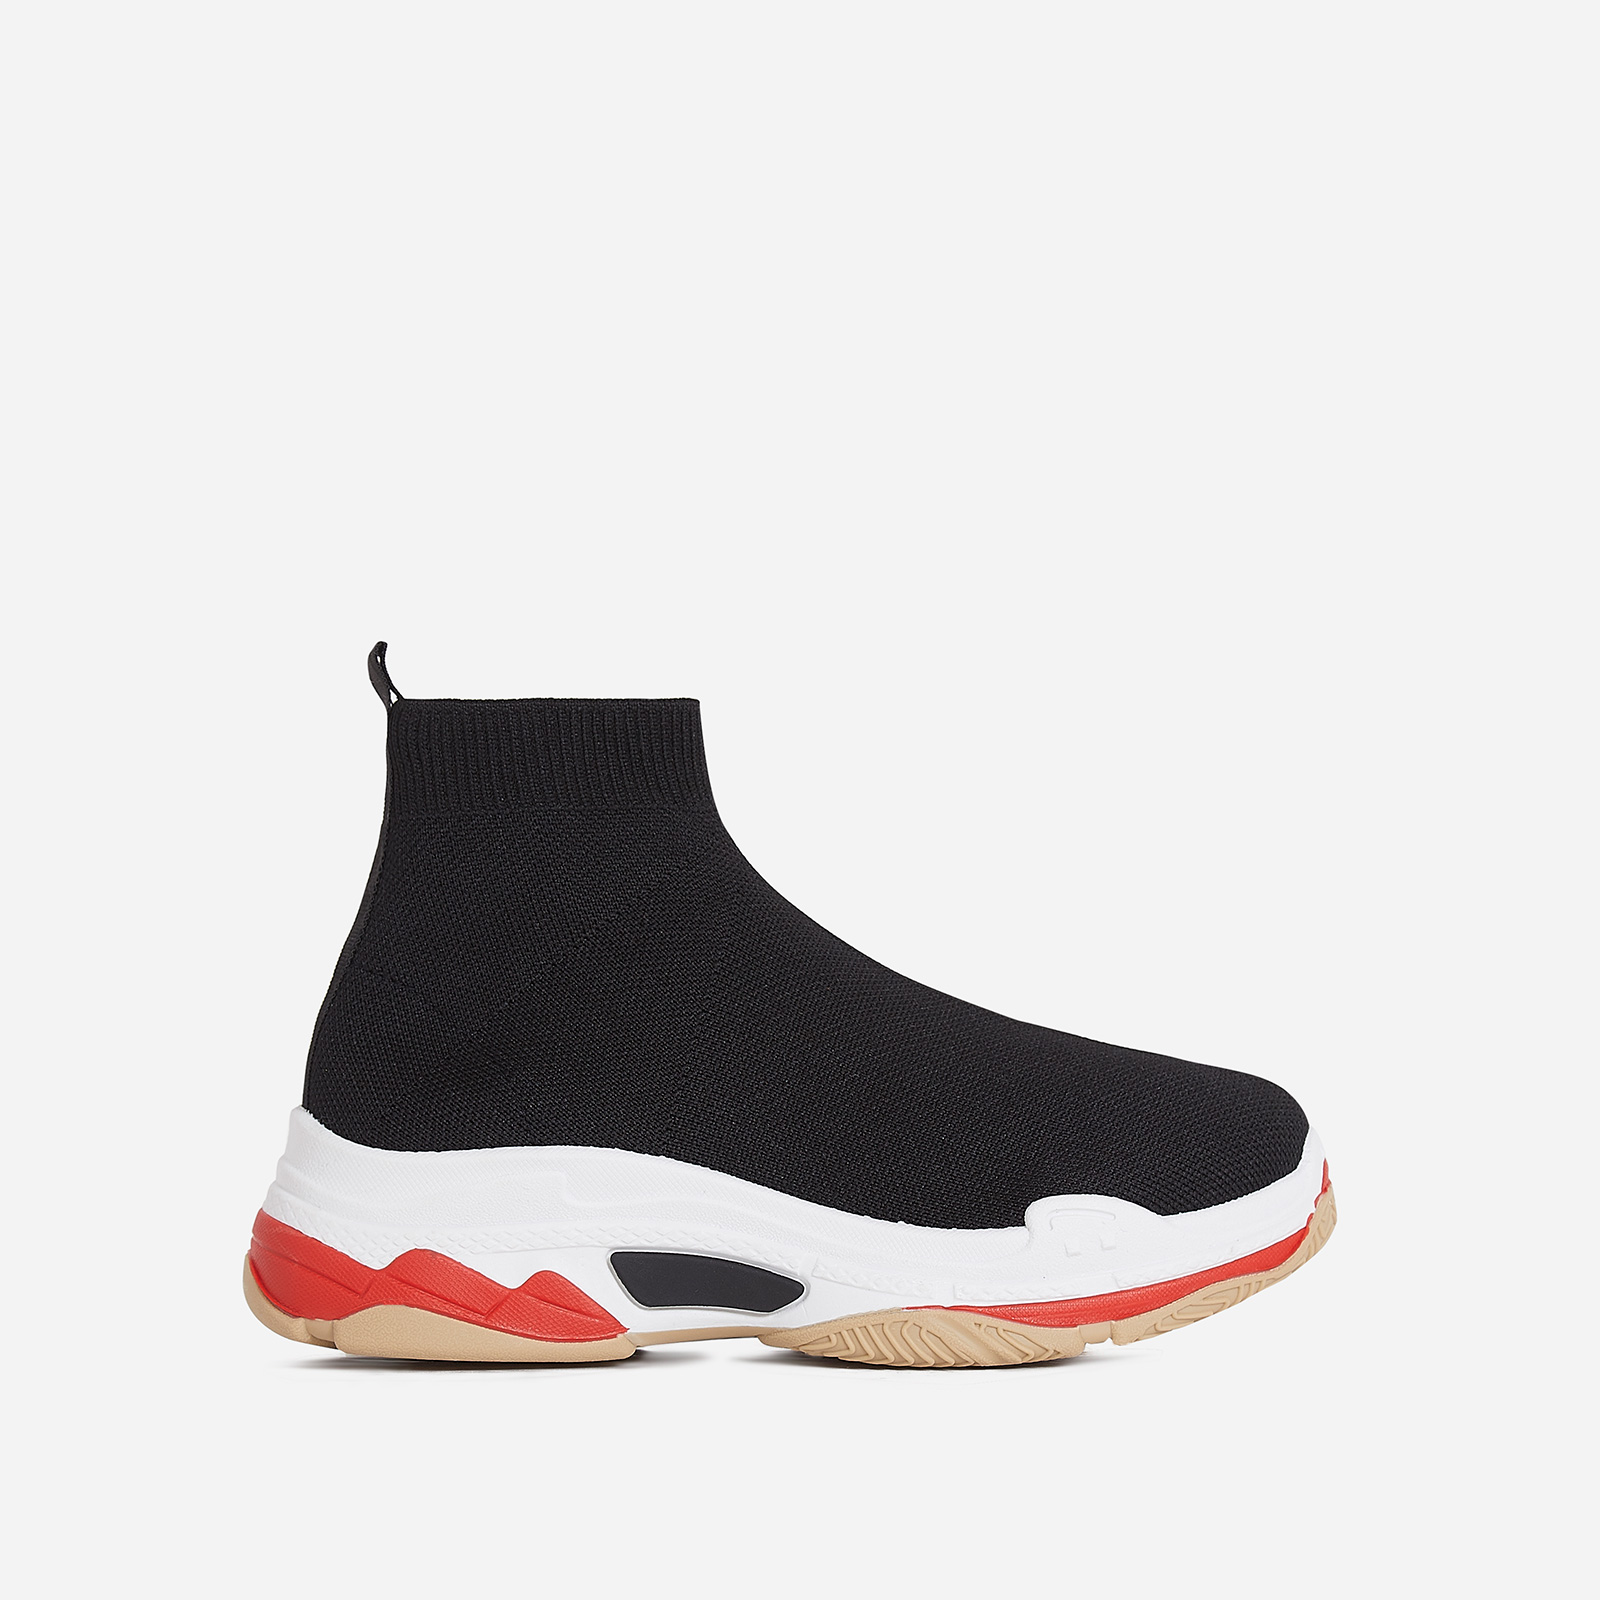 Tidal Chunky Sole Sneaker In Black Knit